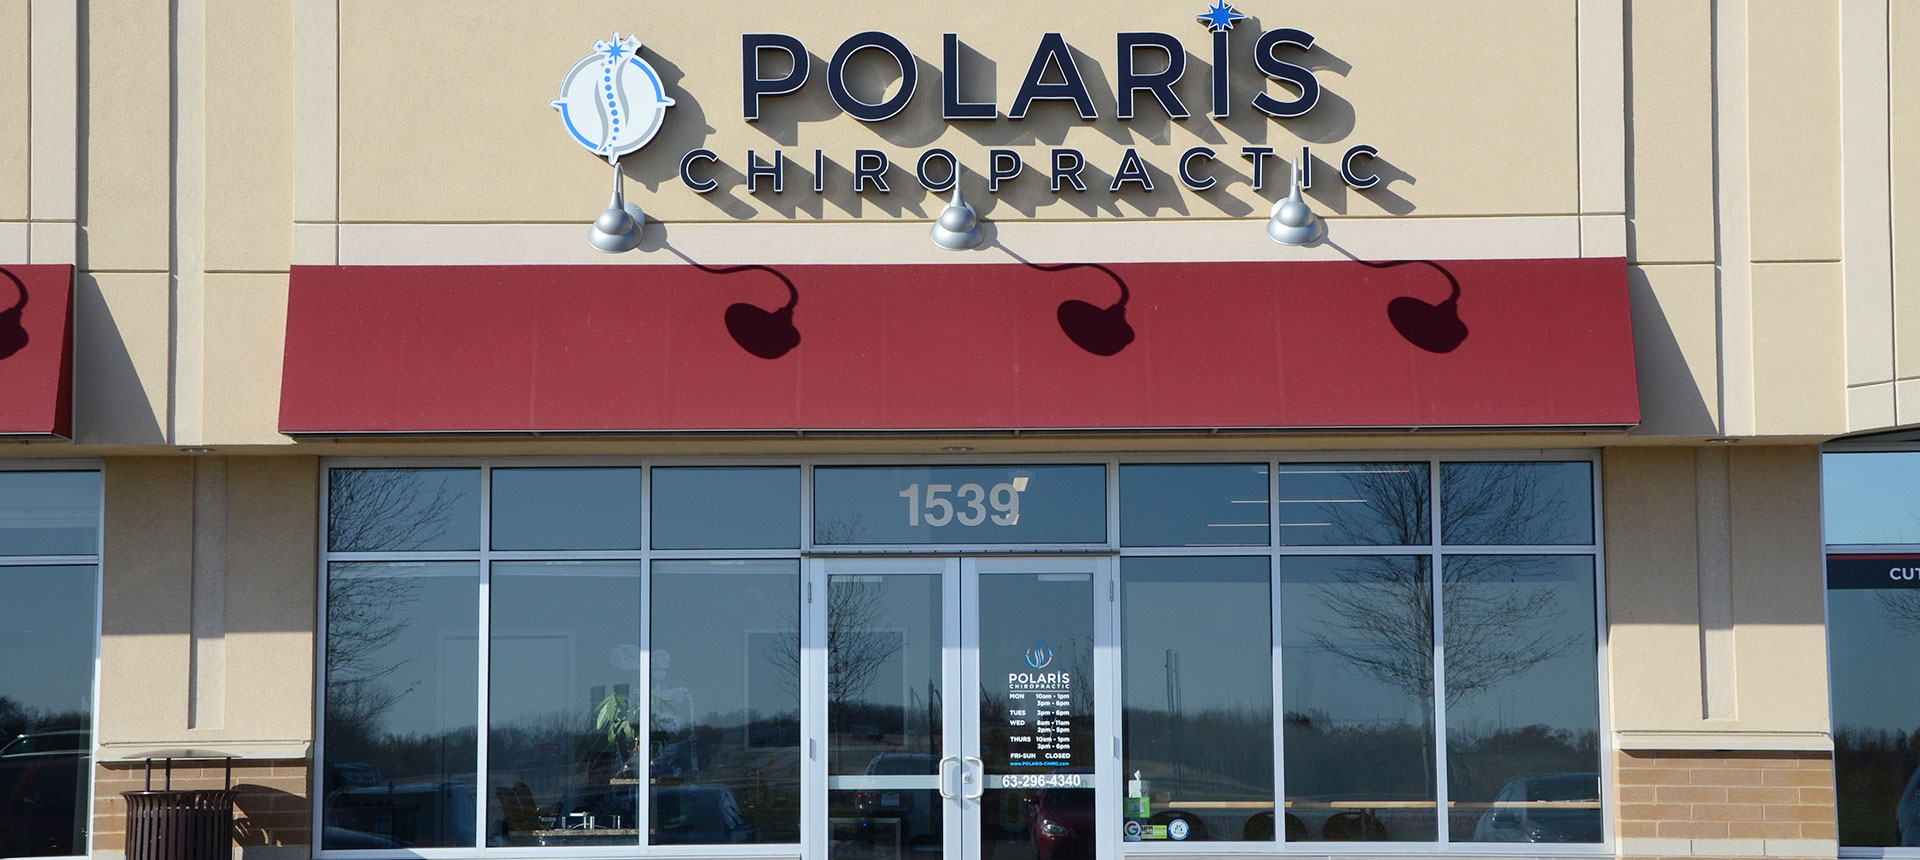 The Polaris Chiropractic office in Monticello, MN